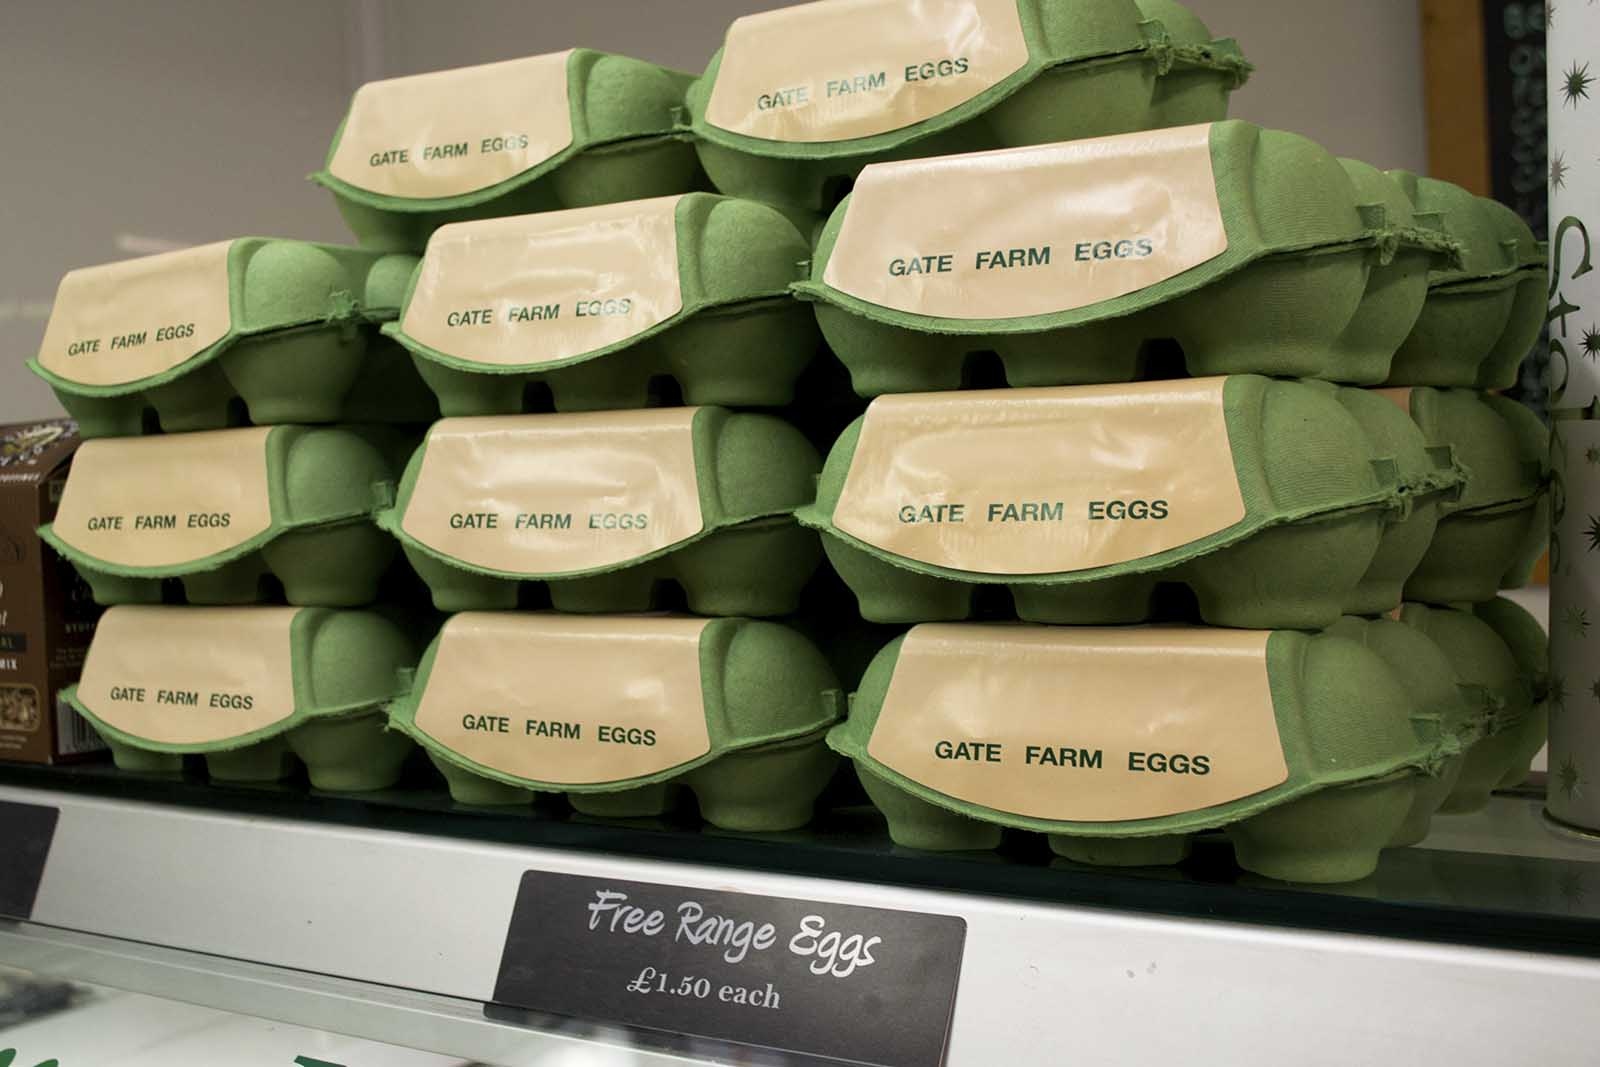 Free range eggs from Gate Farm